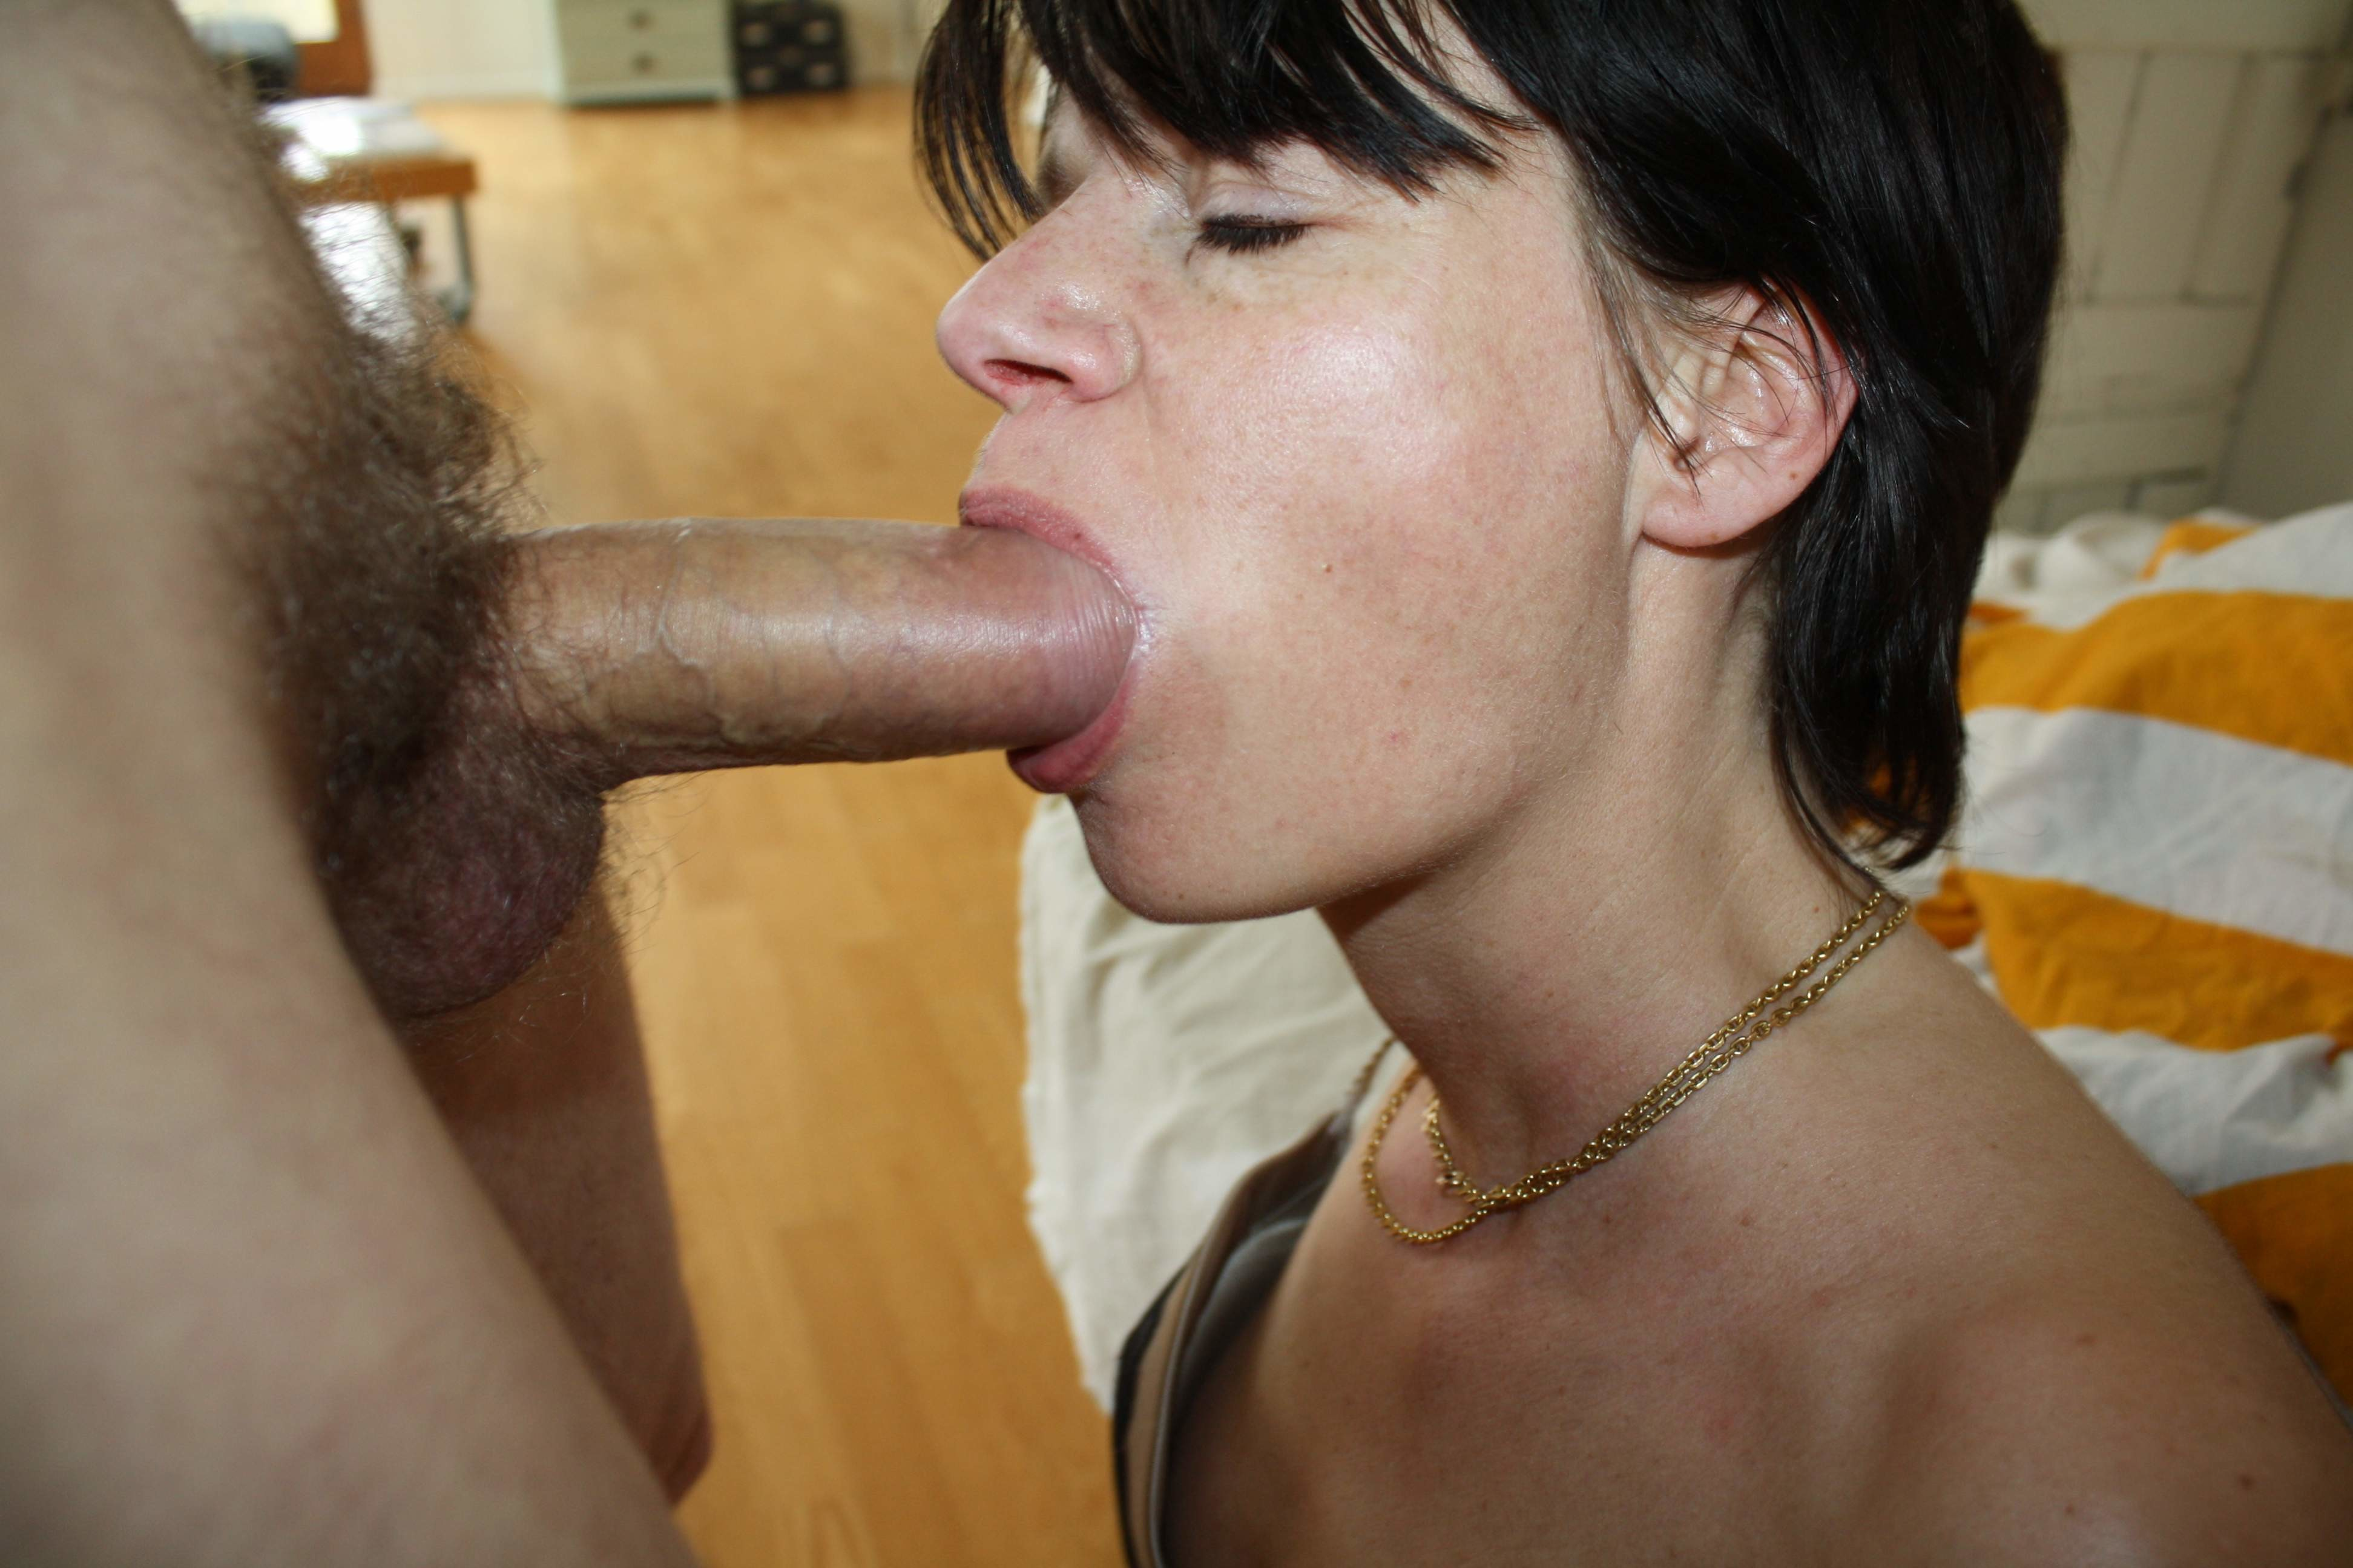 This Cock Hungry Slut Loves To Suck A Dick And She Looks Like An Ordinary Girl